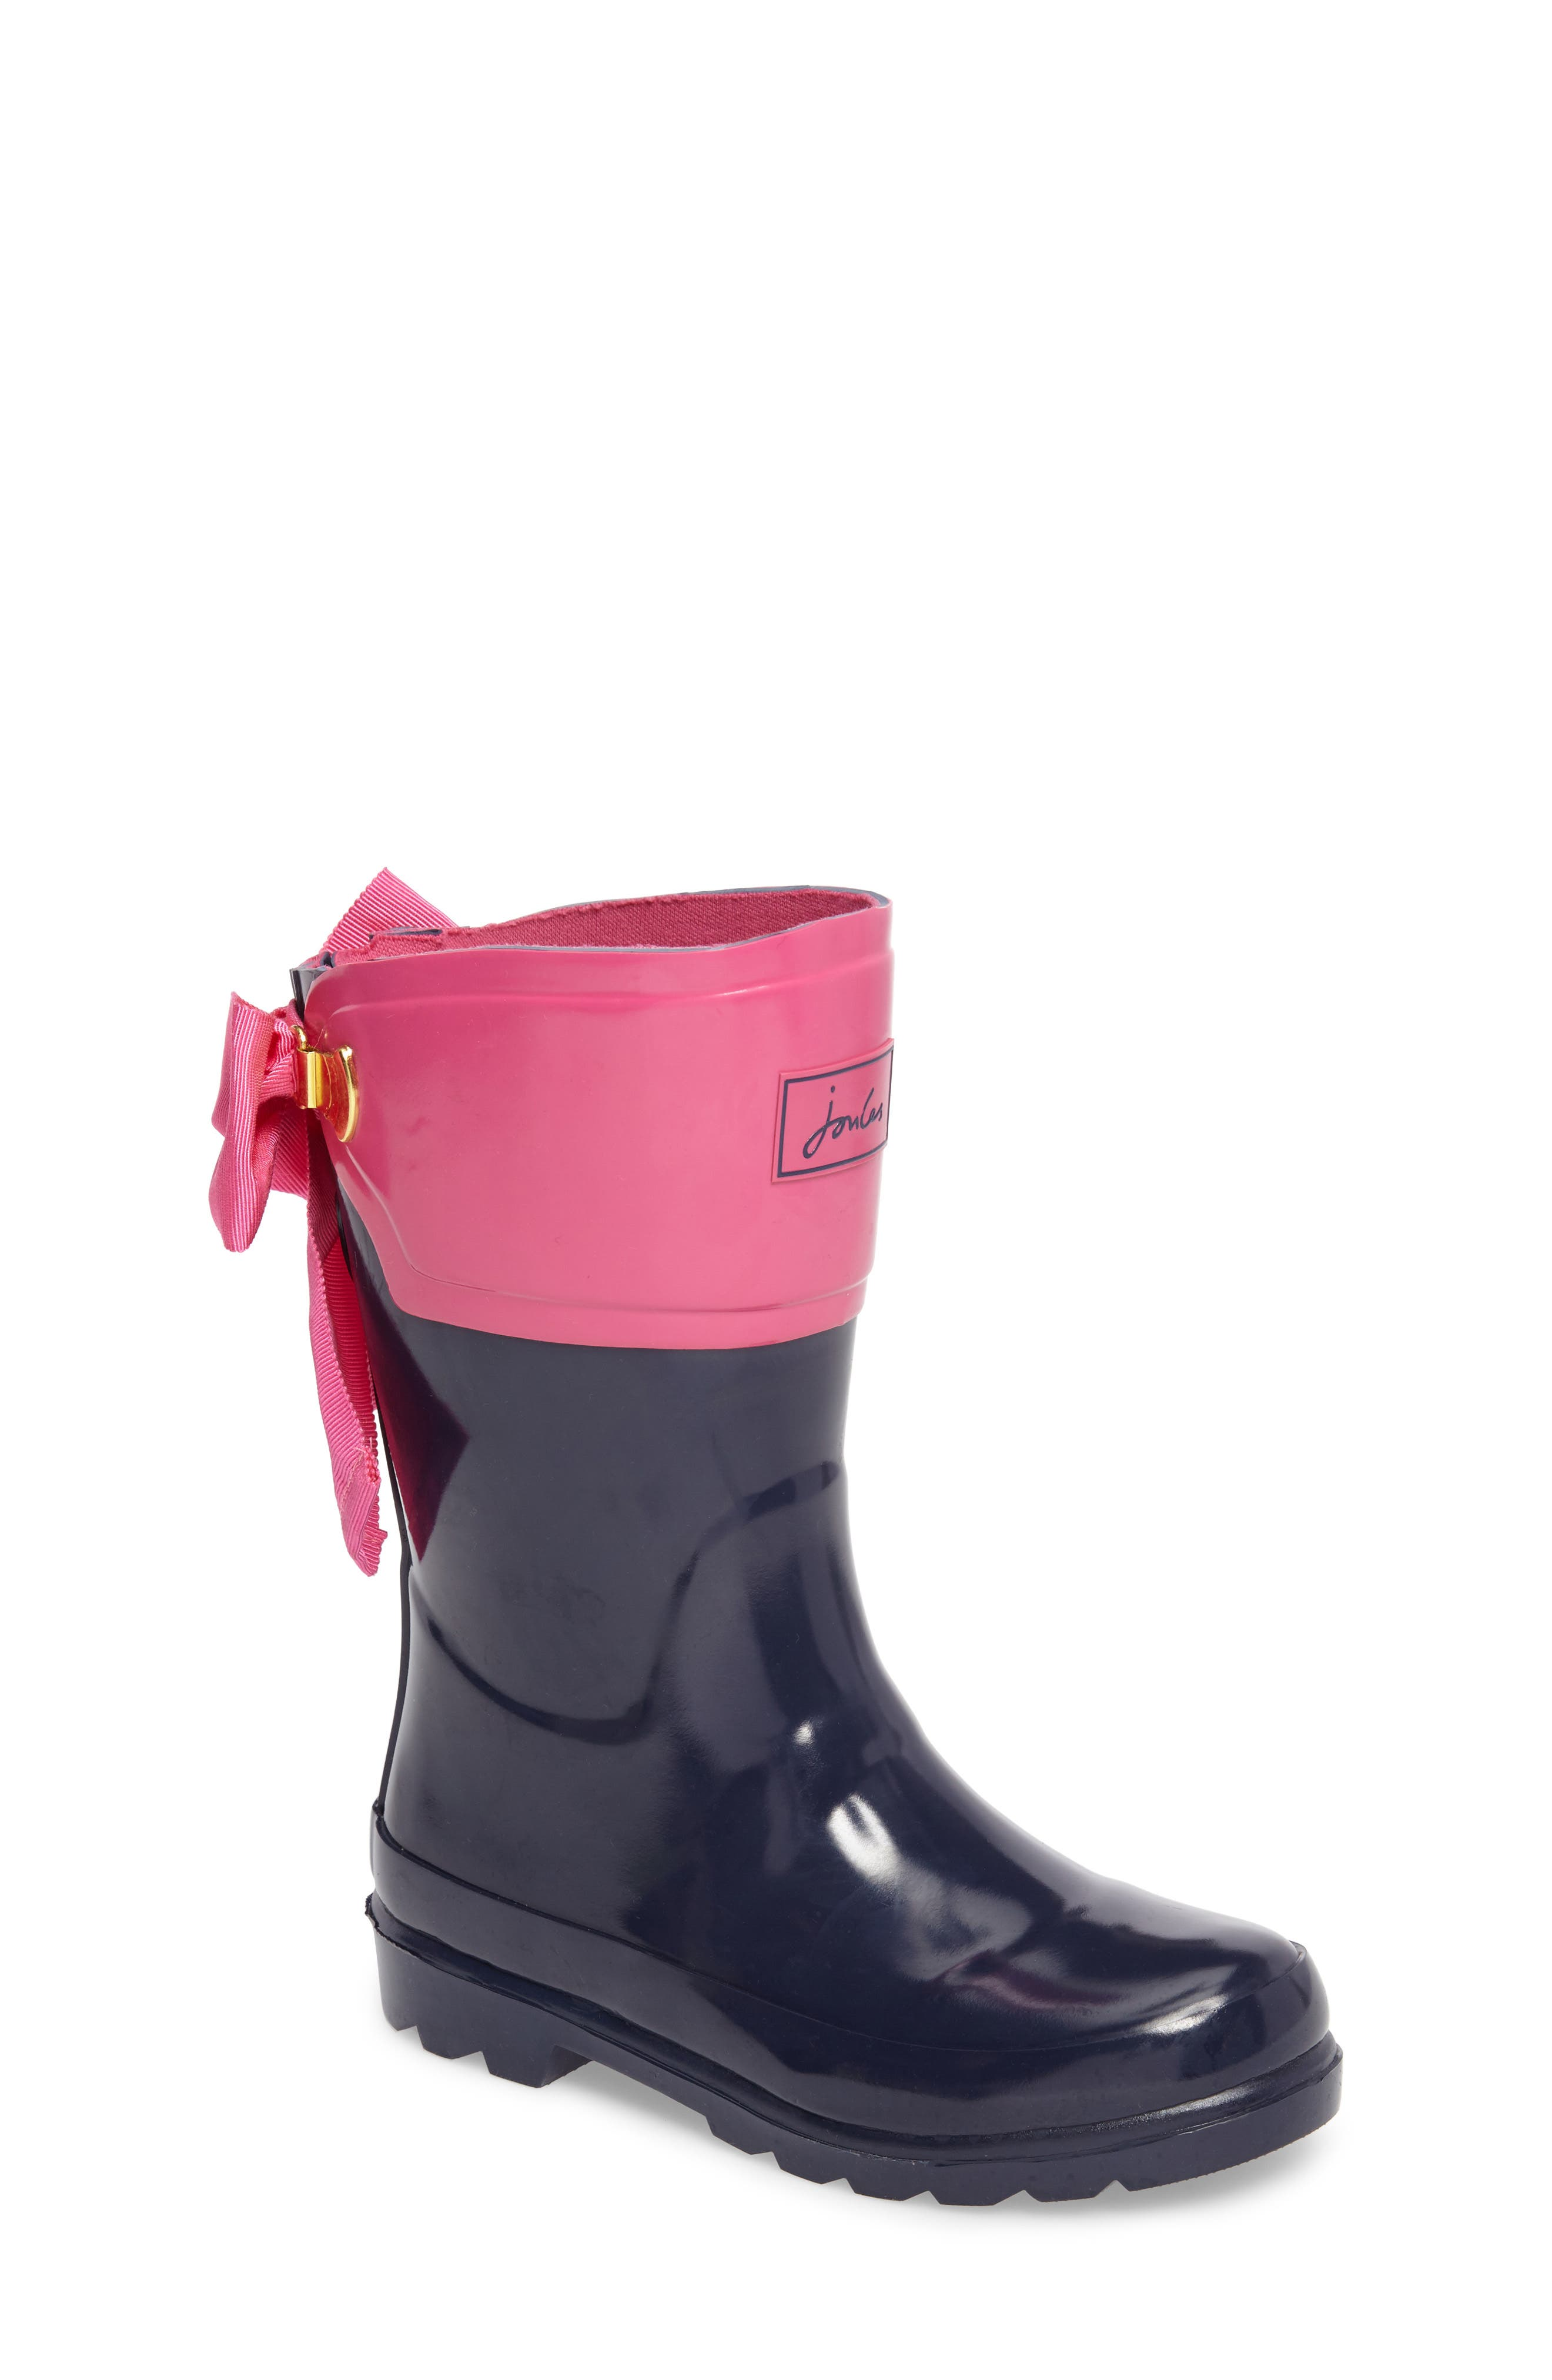 Joules Evedon Bow Waterproof Rain Boot (Toddler, Little Kid & Big Kid)